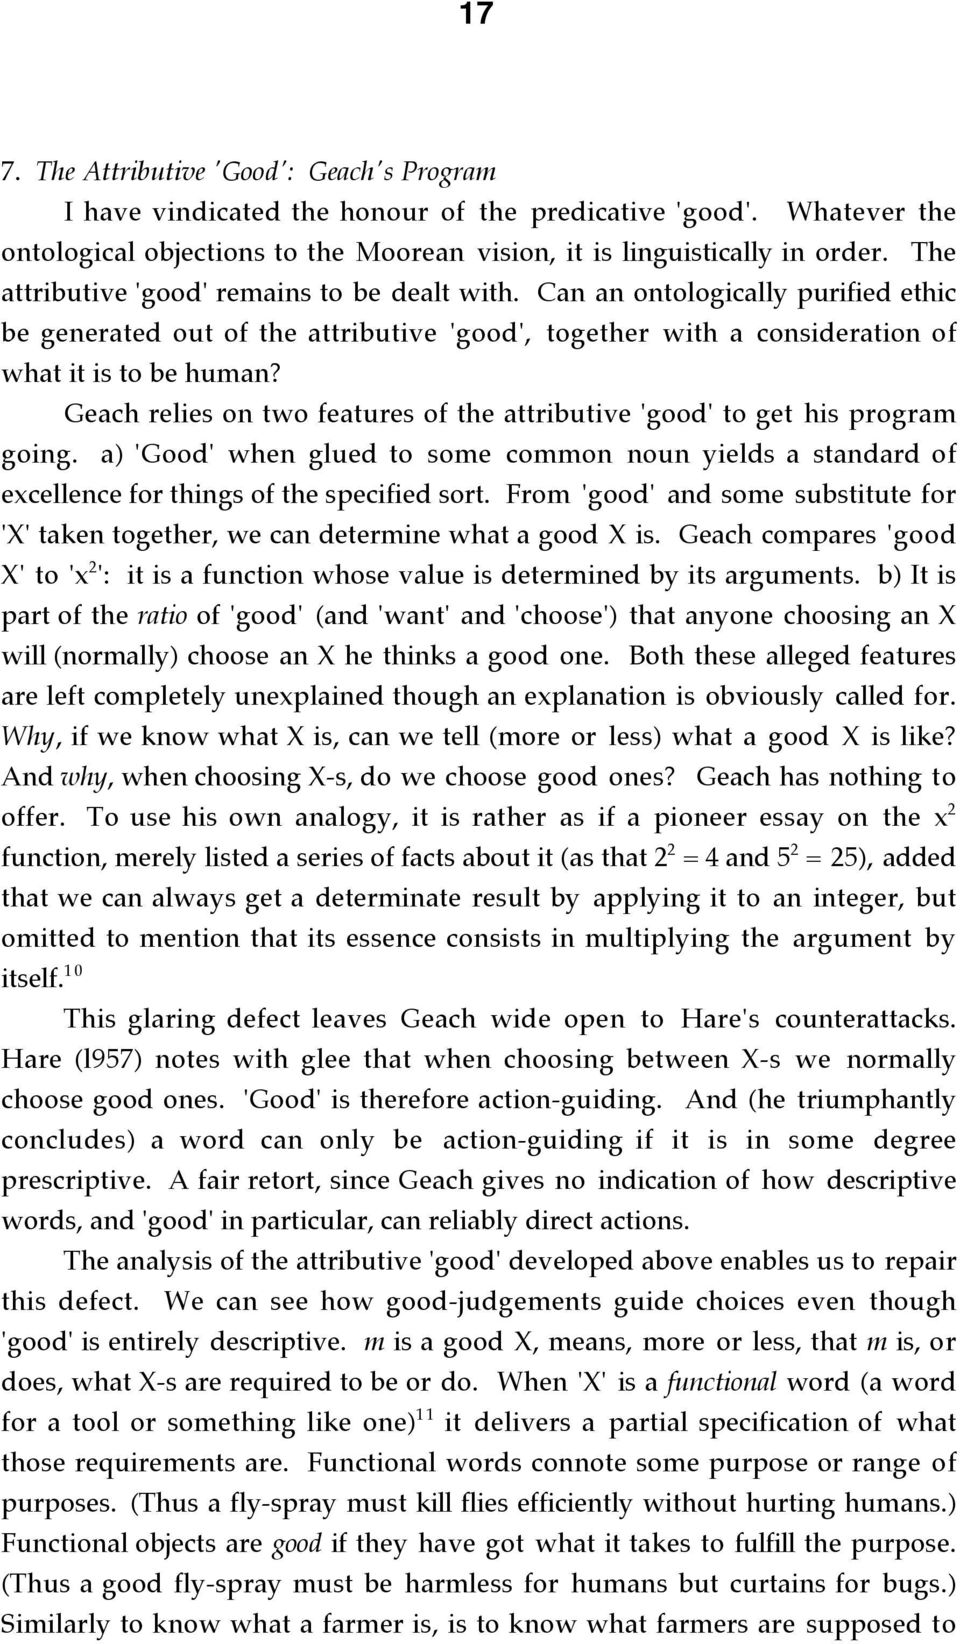 Geach relies on two features of the attributive 'good' to get his program going. a) 'Good' when glued to some common noun yields a standard of excellence for things of the specified sort.